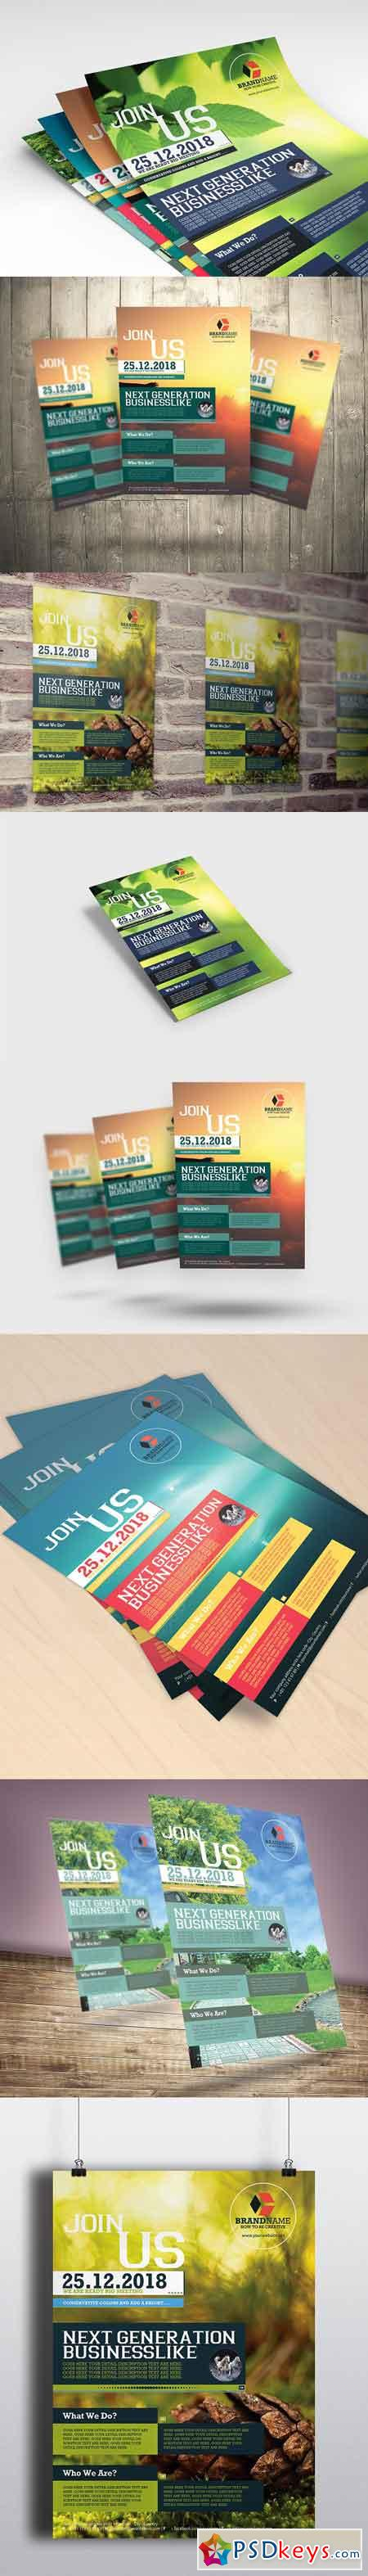 Business Flyers 5 Colors Variation 967221